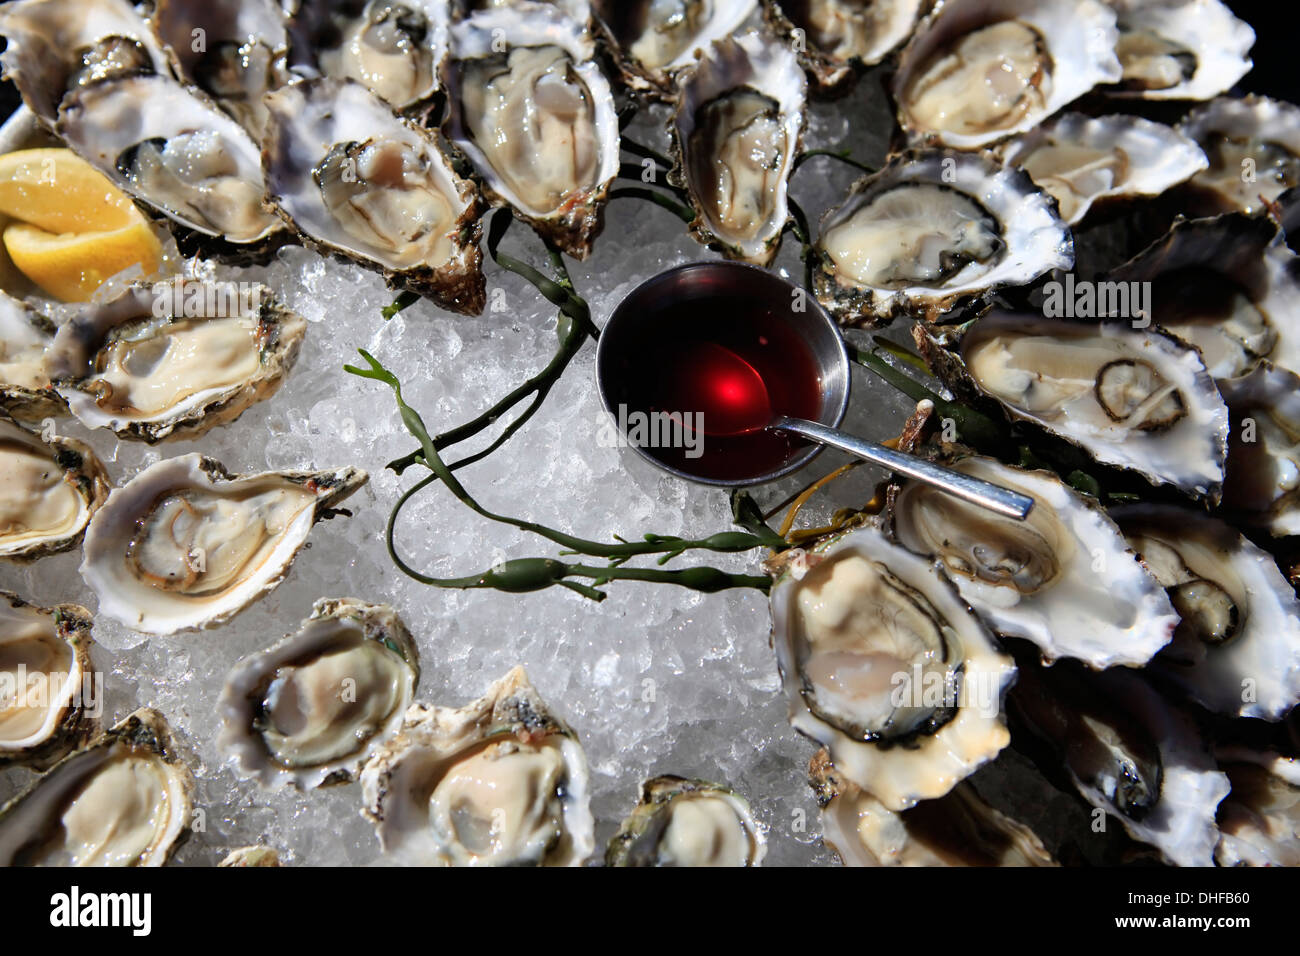 Opened oysters on ice with red souse - Stock Image